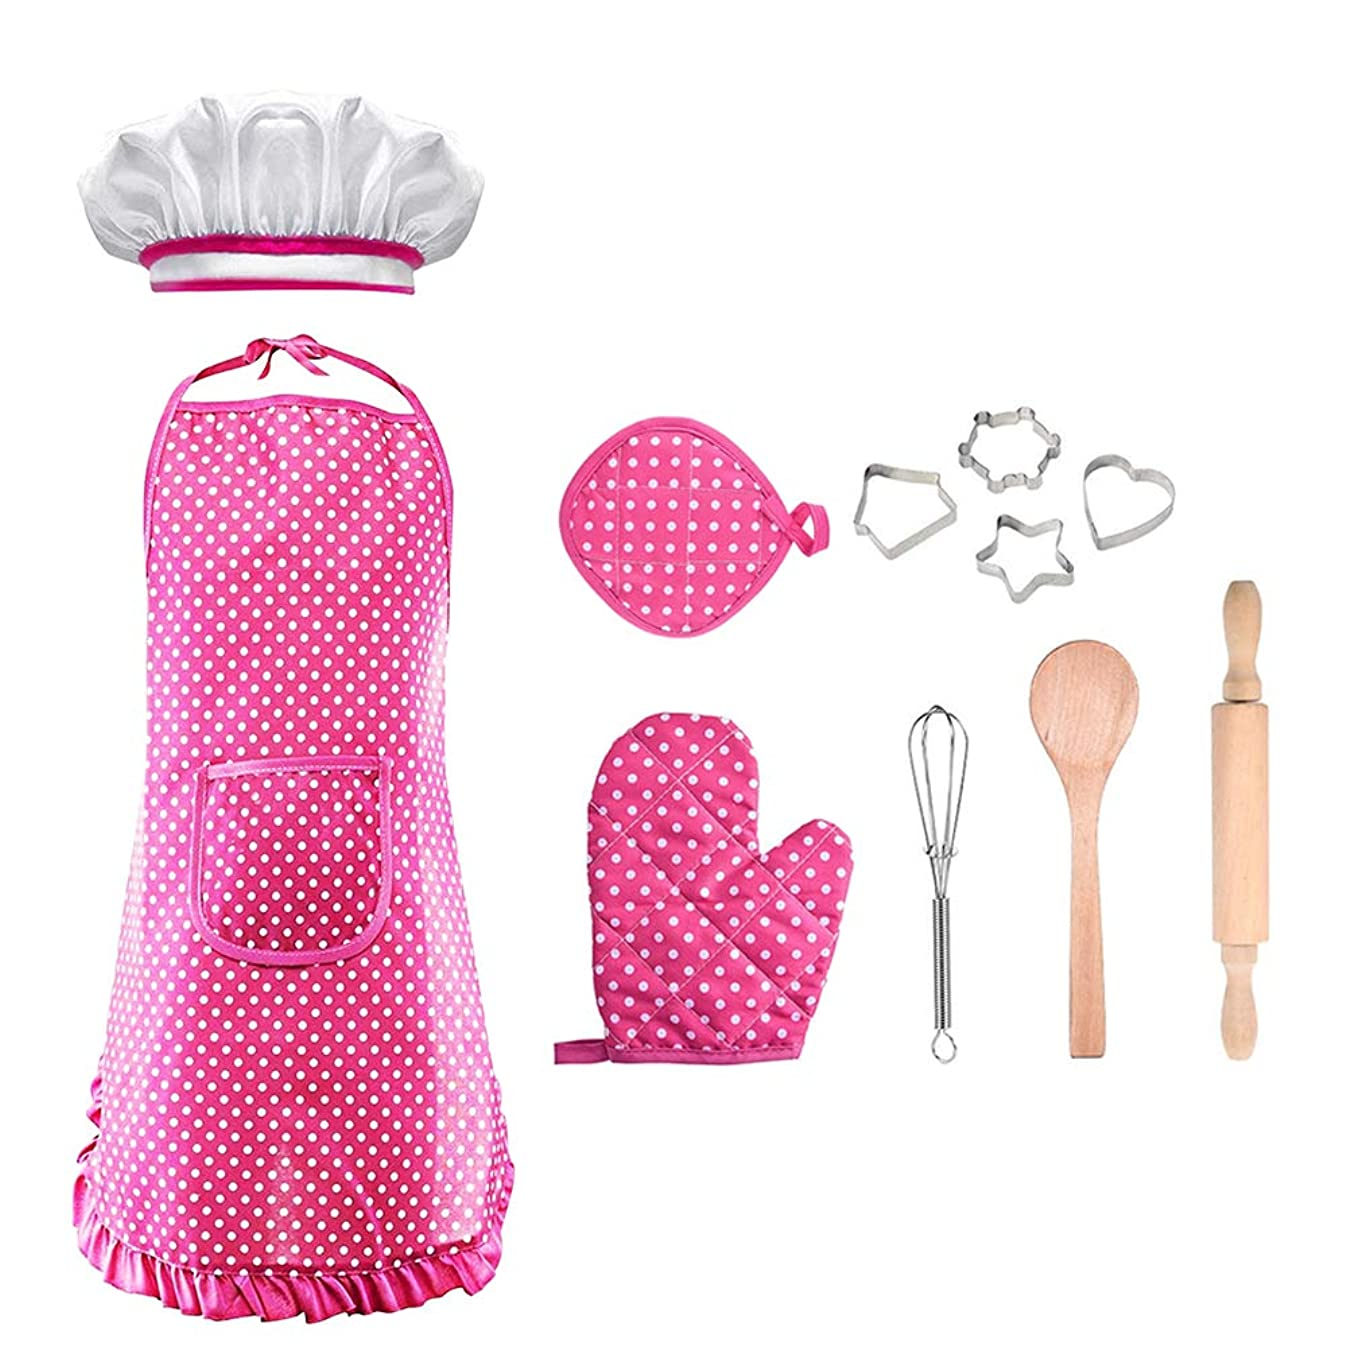 LET'S GO! DIMY Cooking and Baking Set Chef Costume Career Role Play for Kids - Best Gifts